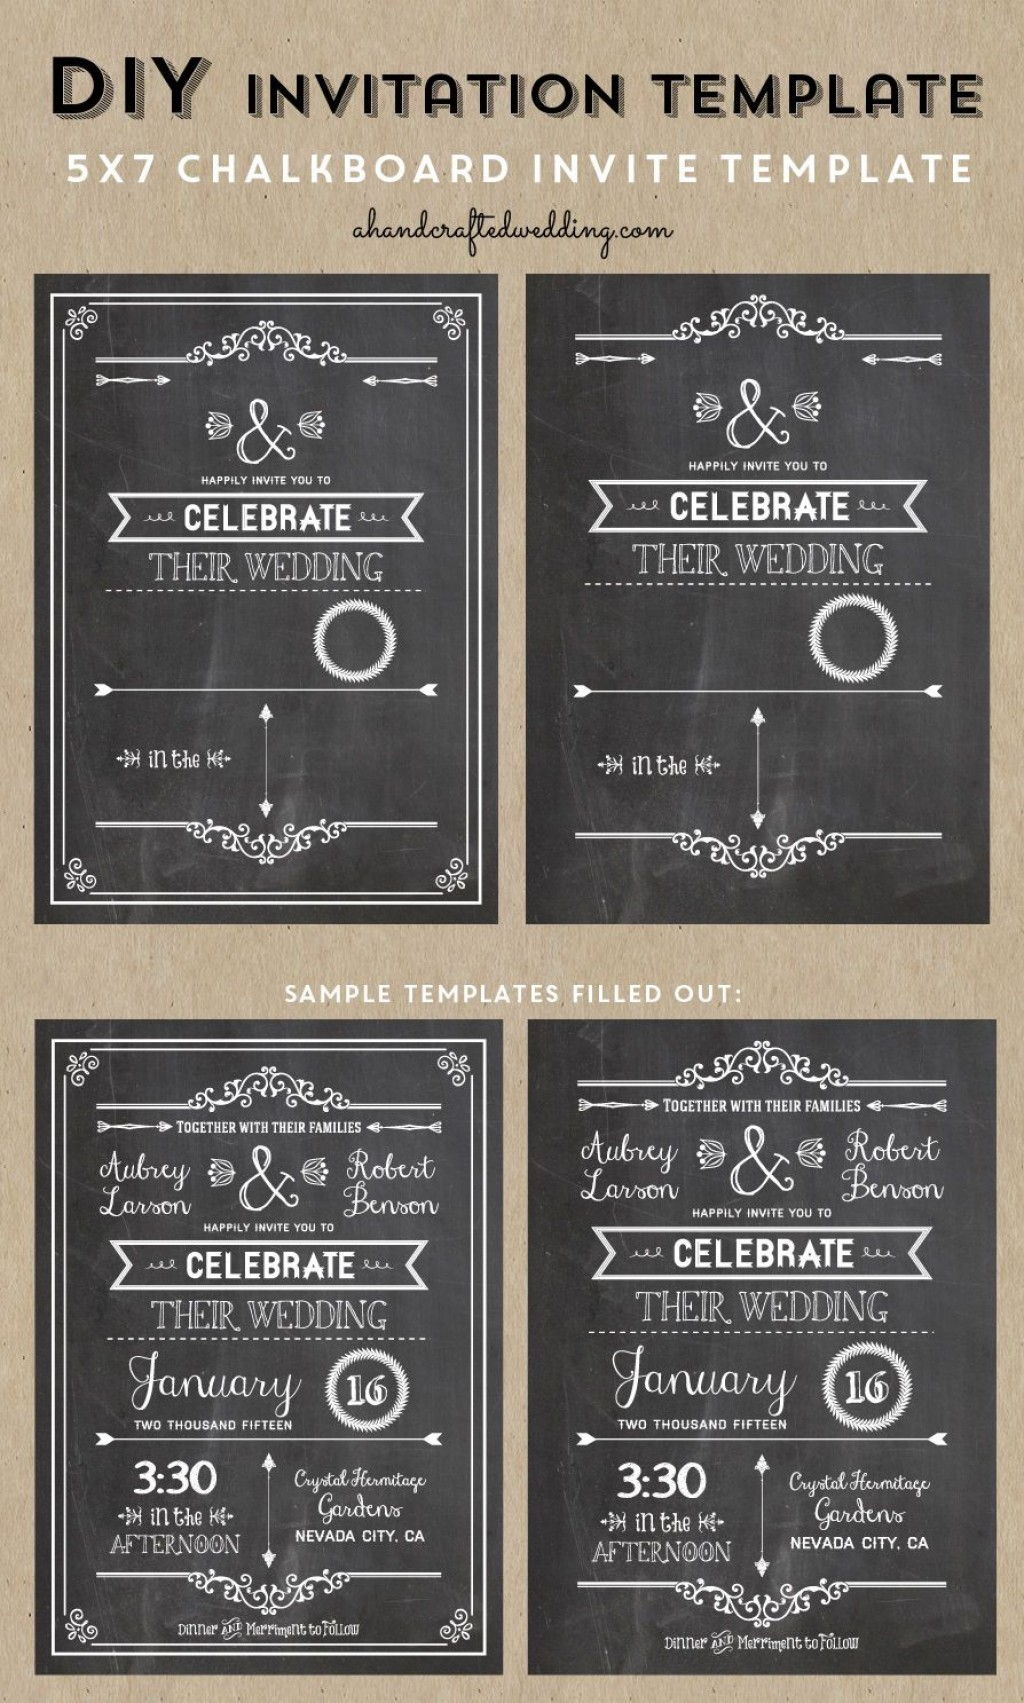 005 Wondrou Chalkboard Invitation Template Free Picture  Birthday DownloadLarge